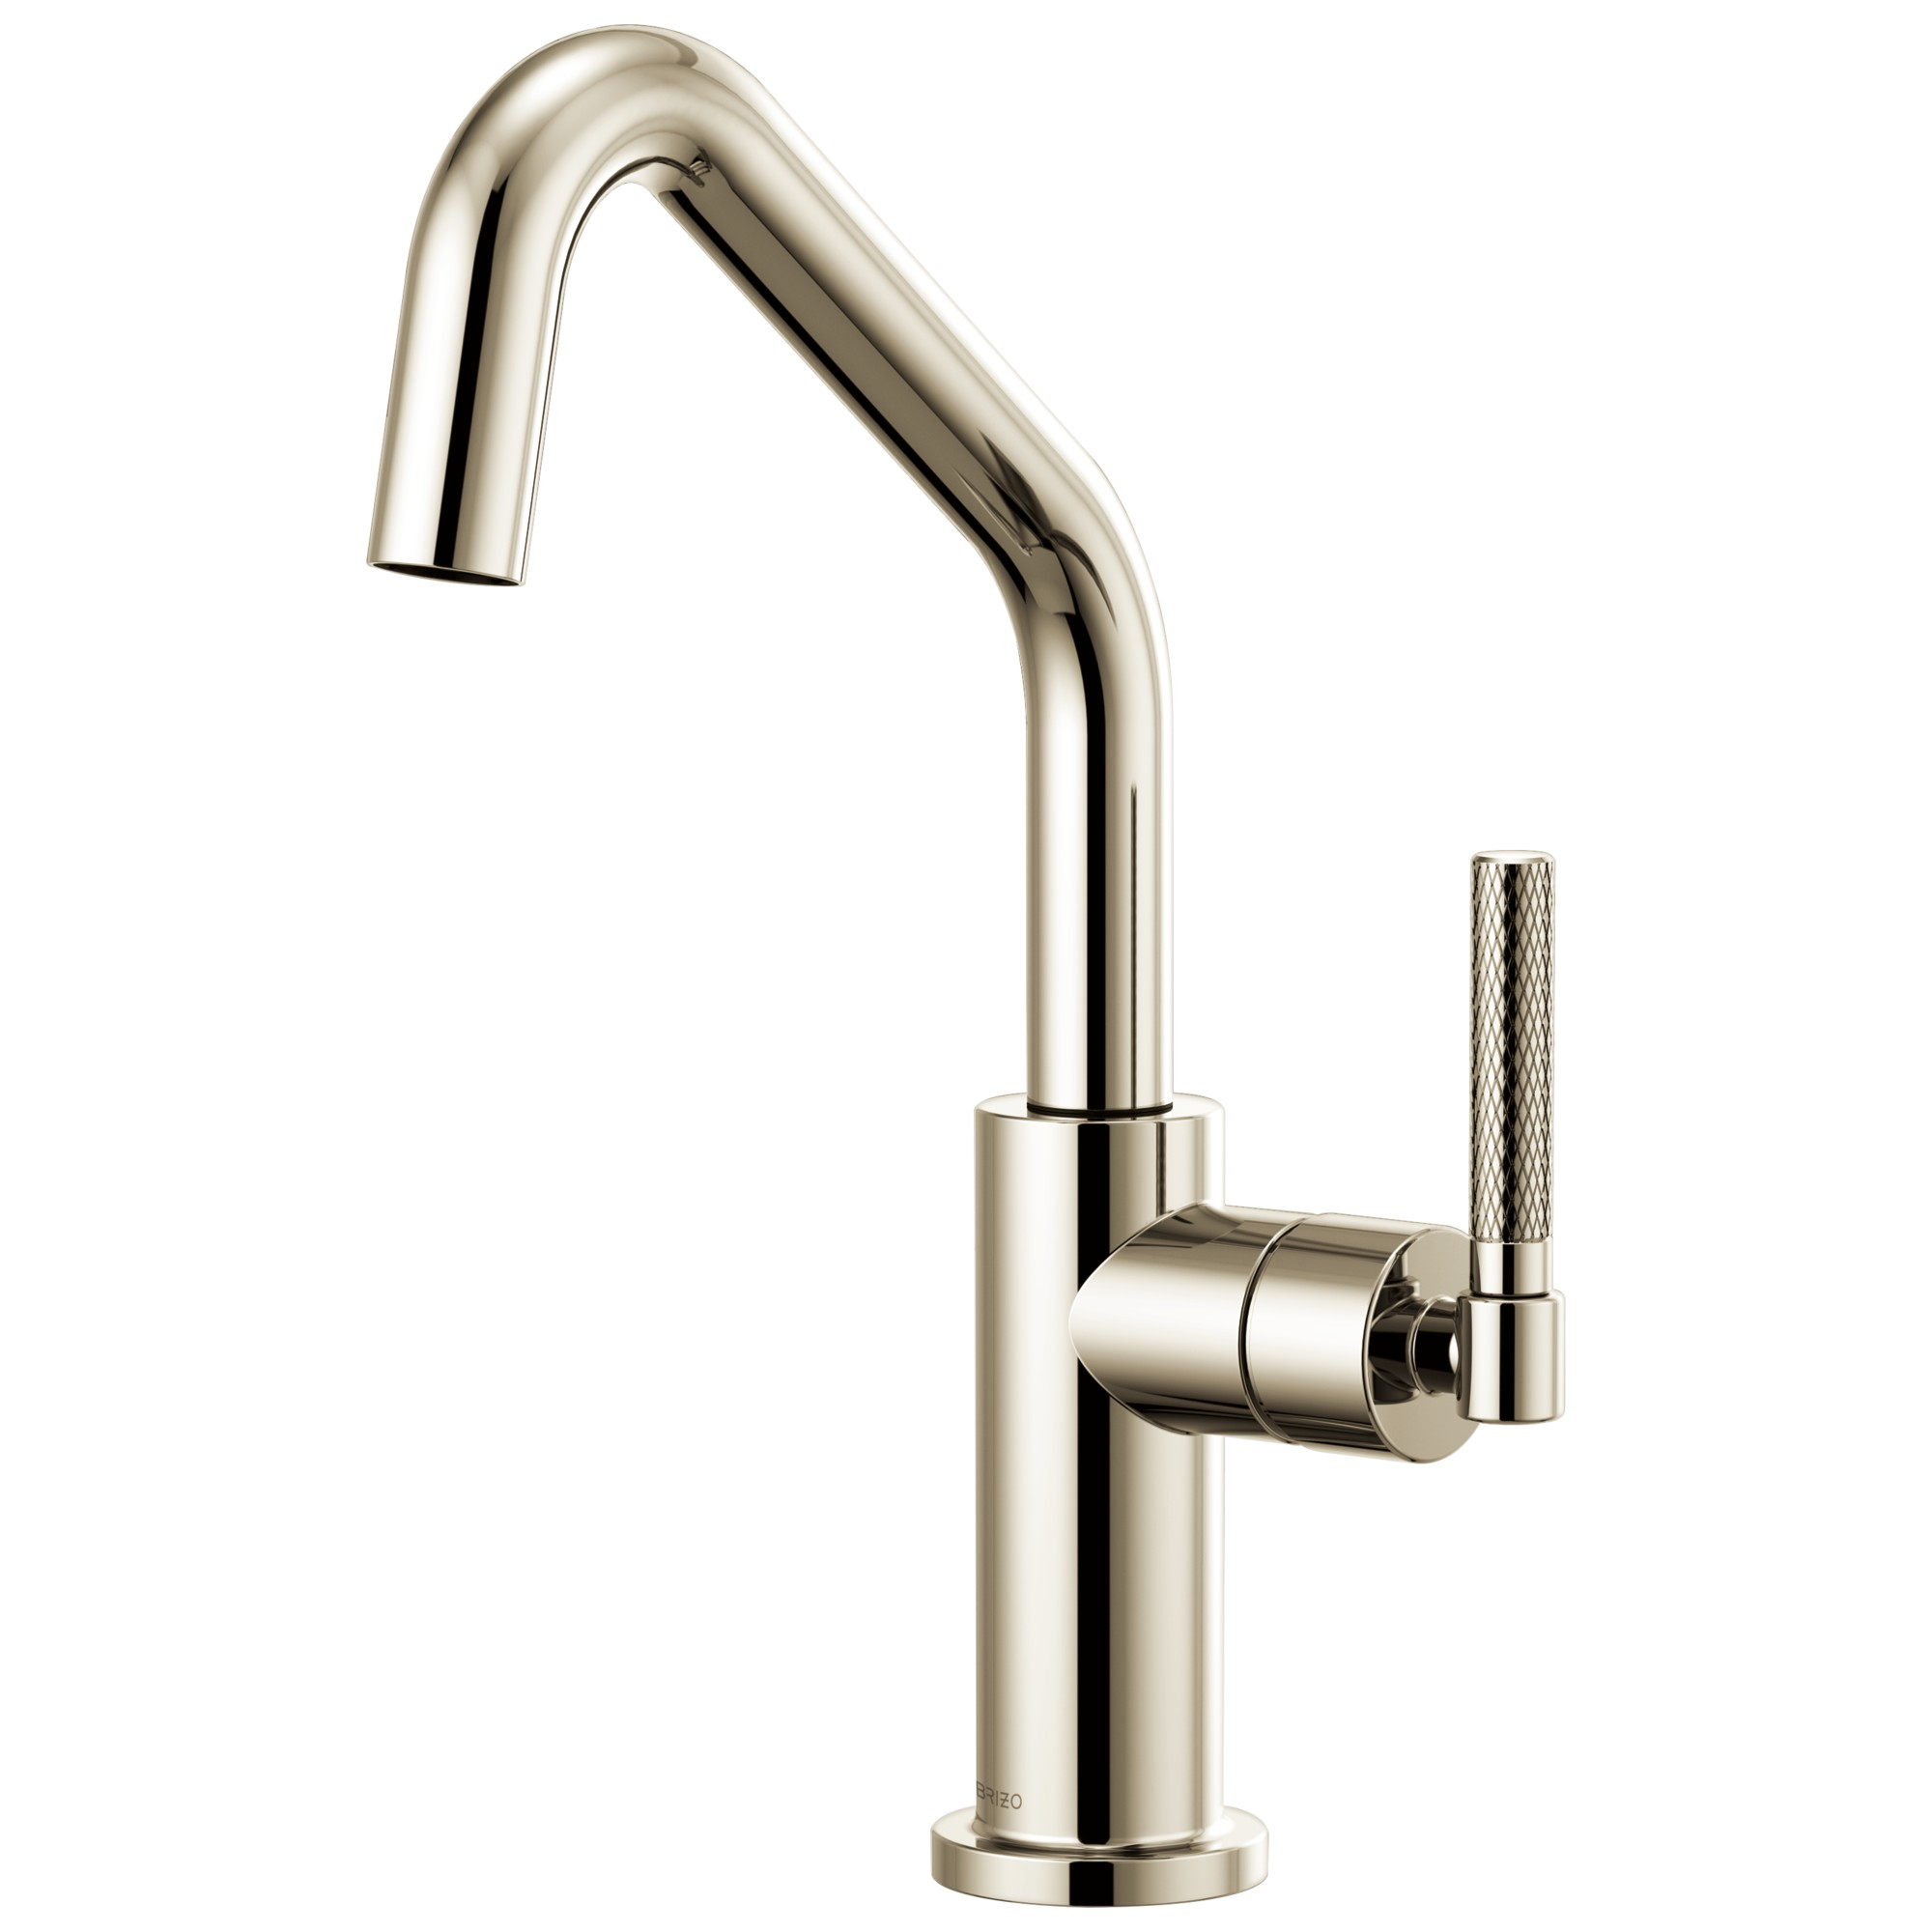 Brizo 61063LF-PN Litze Bar Faucet with Angled Spout and Knurled Handle - Polished Nickel